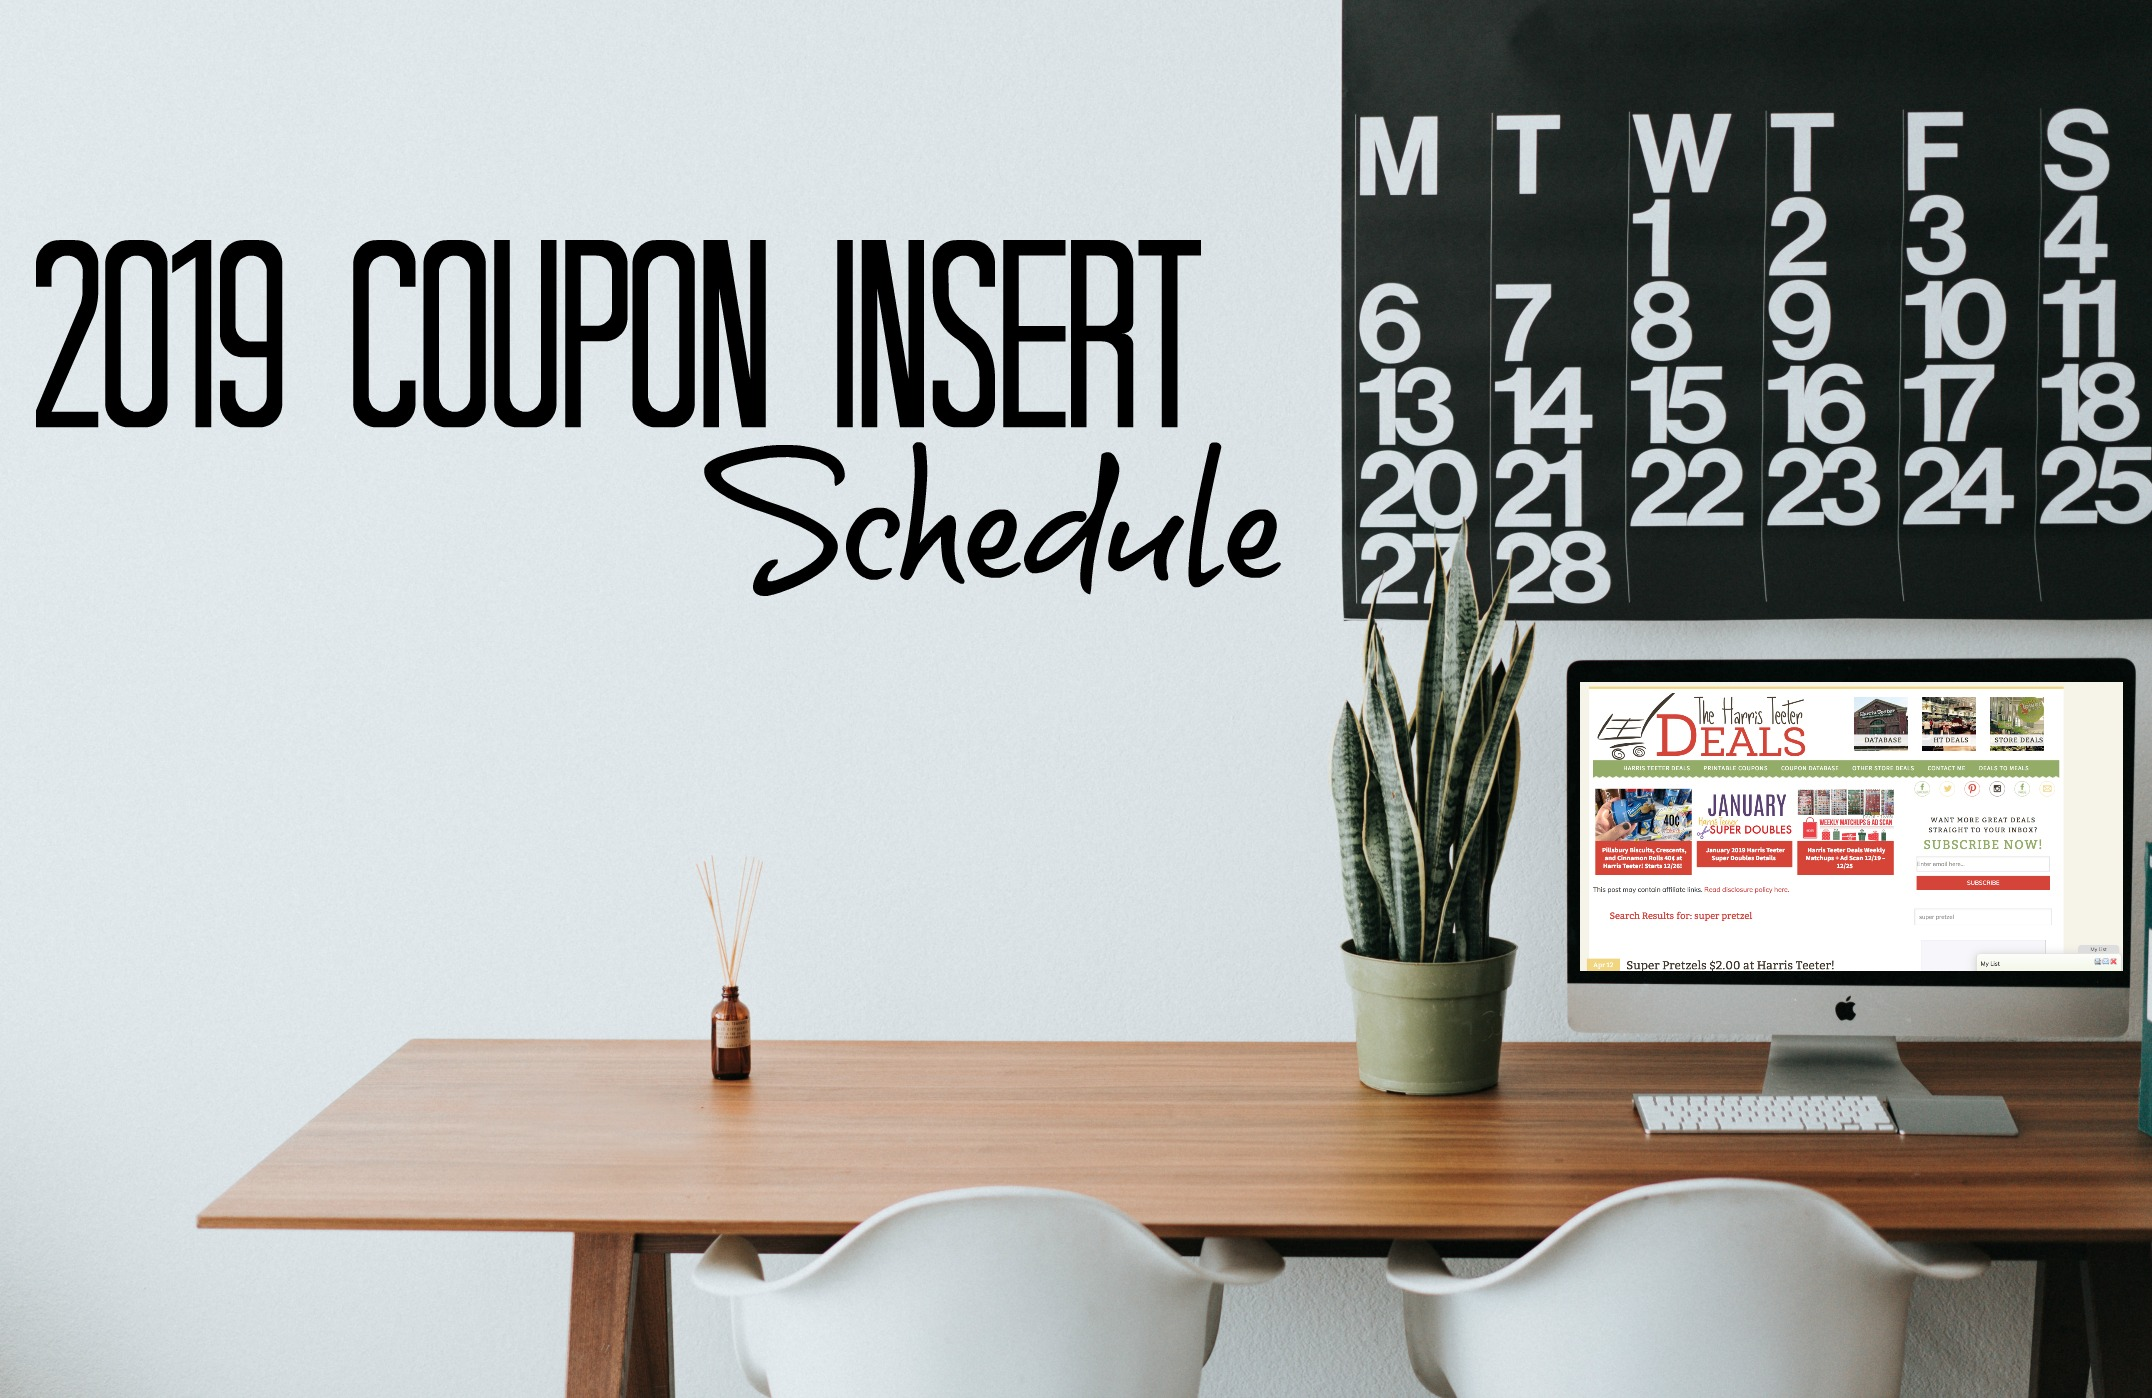 Uhaul coupons may 2019